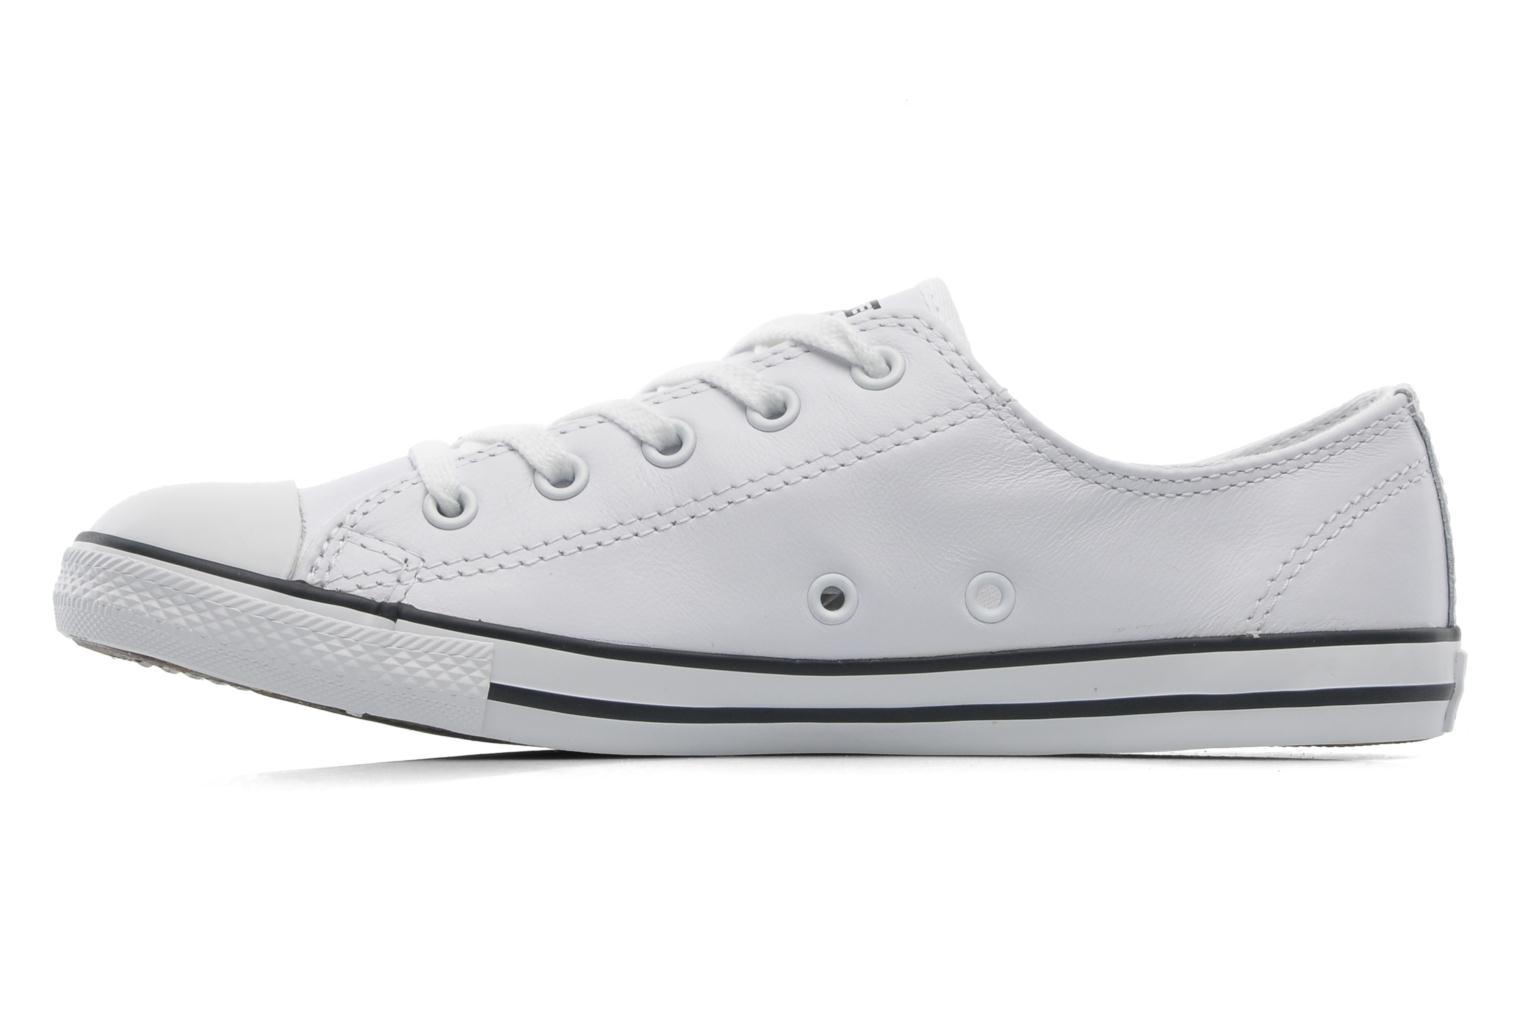 Converse All Star Dainty Cuir Ox W Wit Outlet Nieuwe 0SiRX